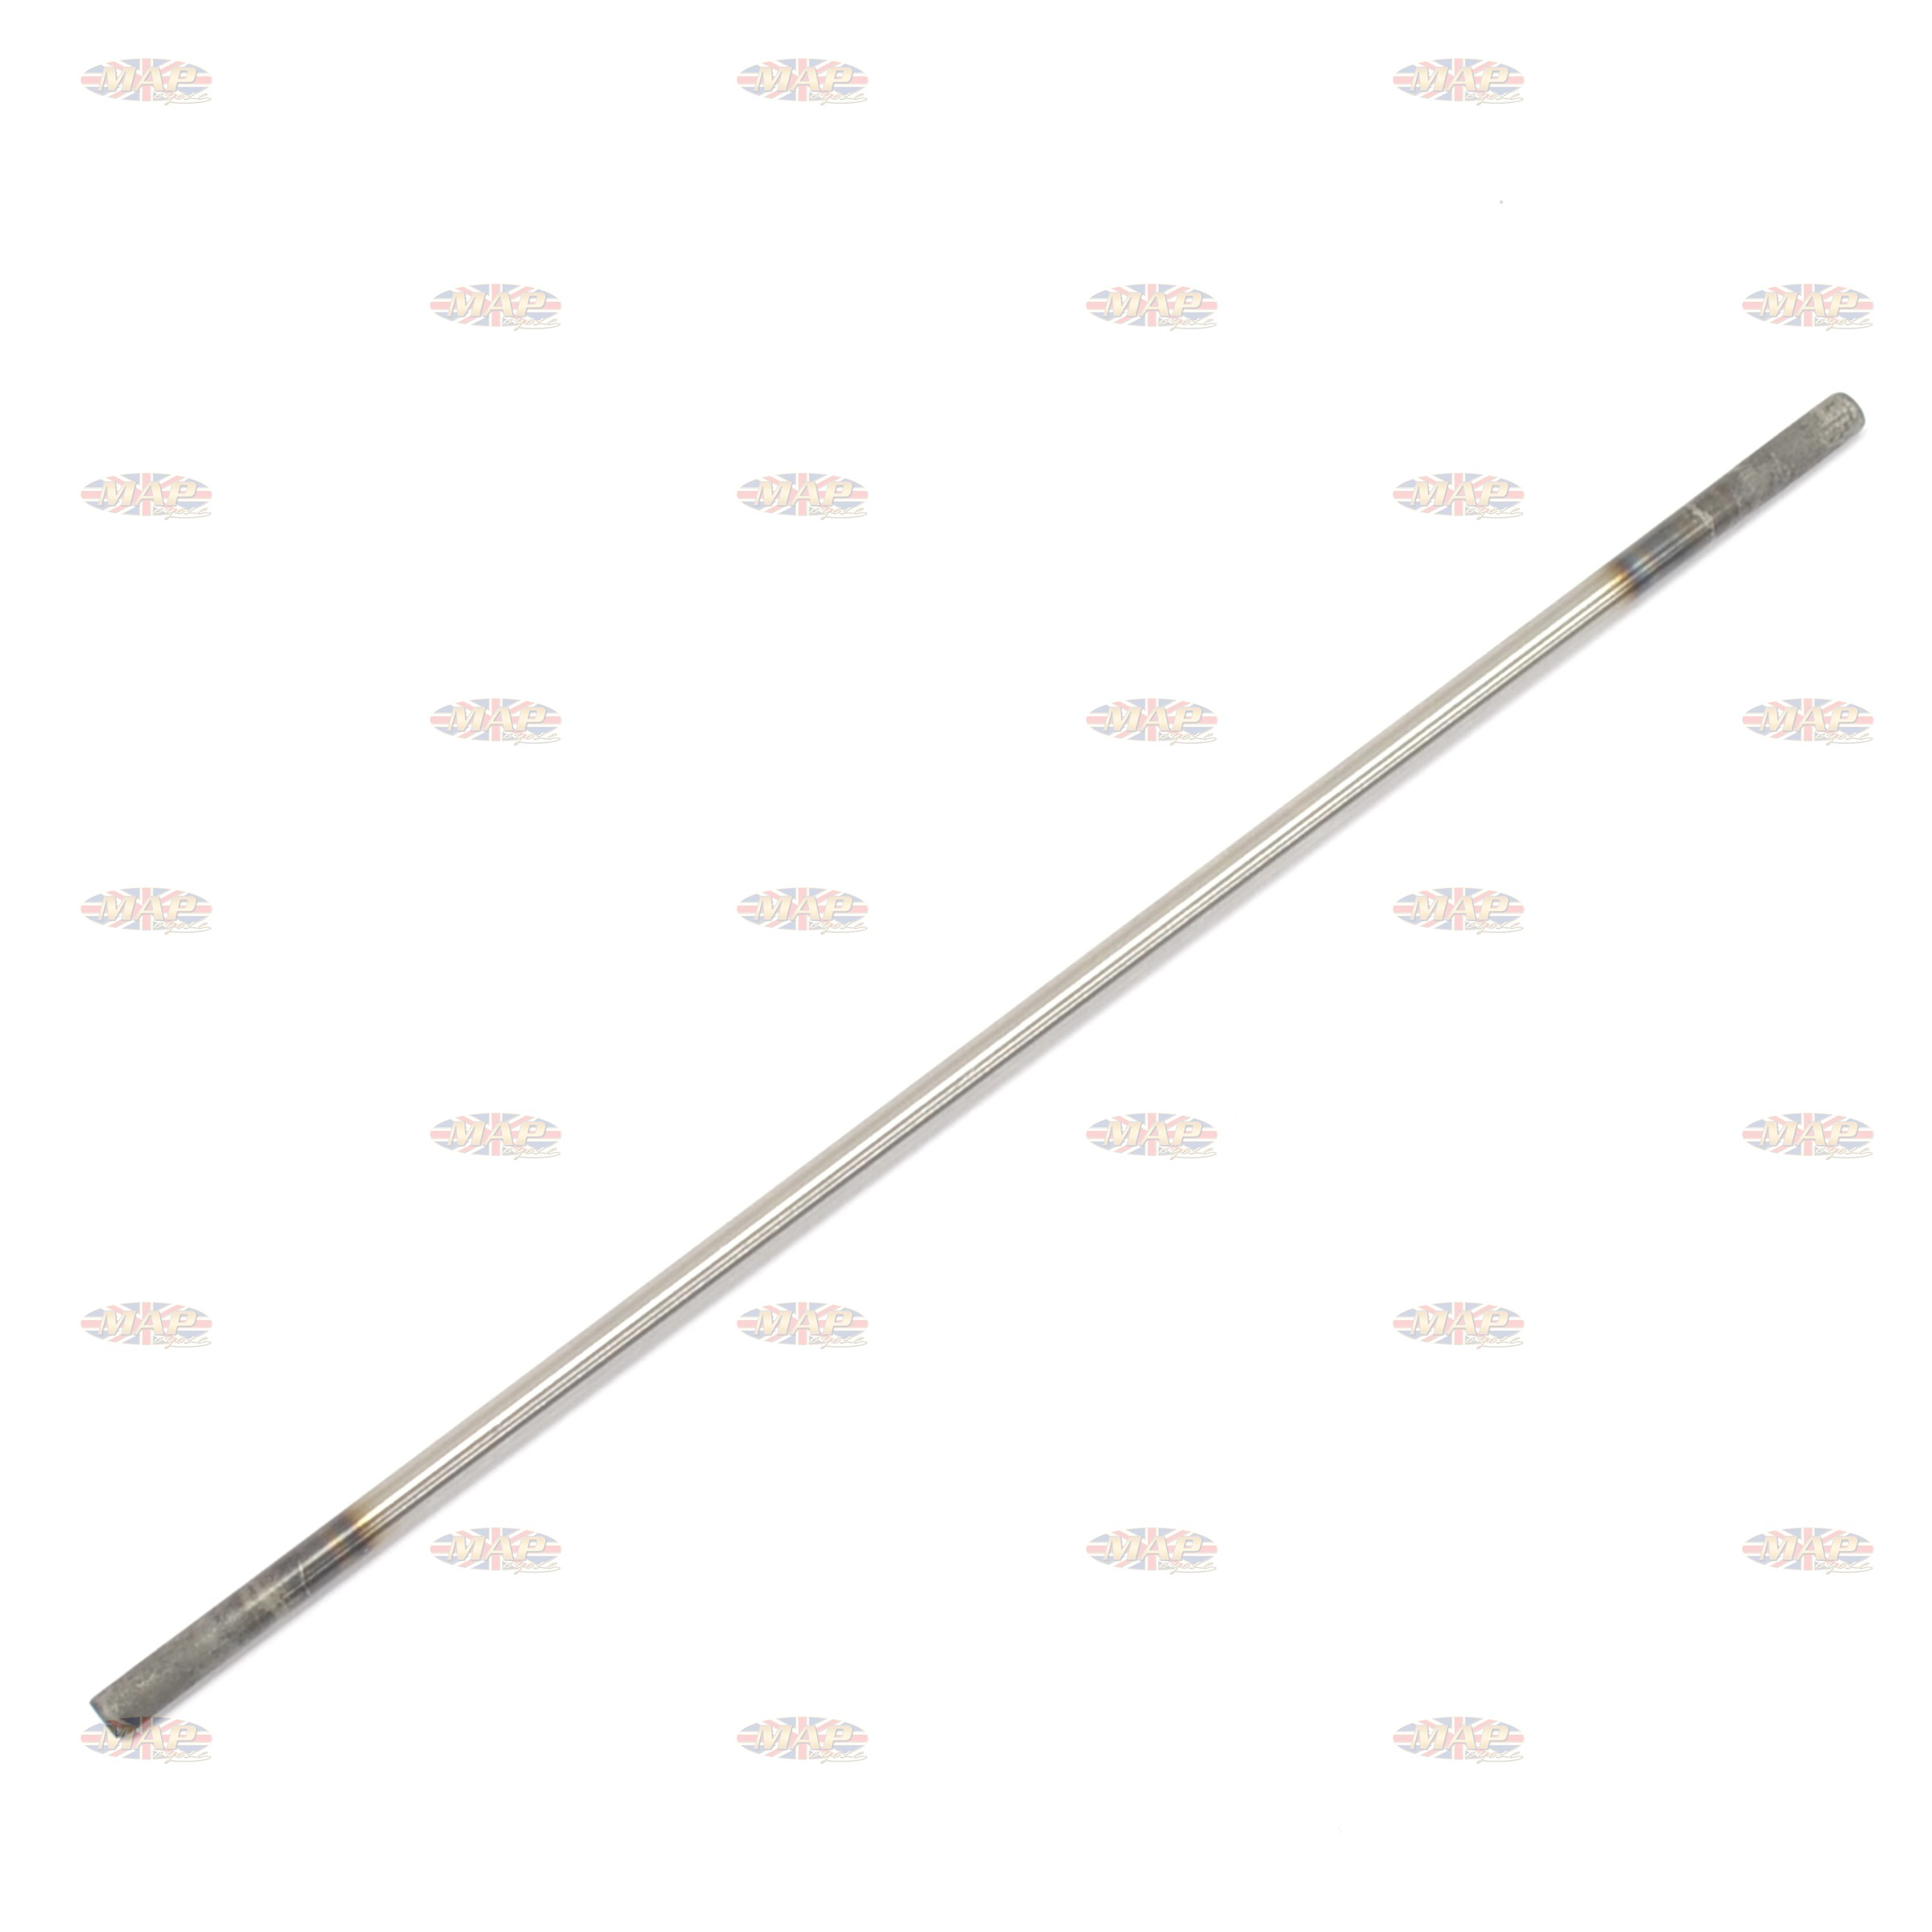 Triumph T20 Clutch Push Rod 57-1140